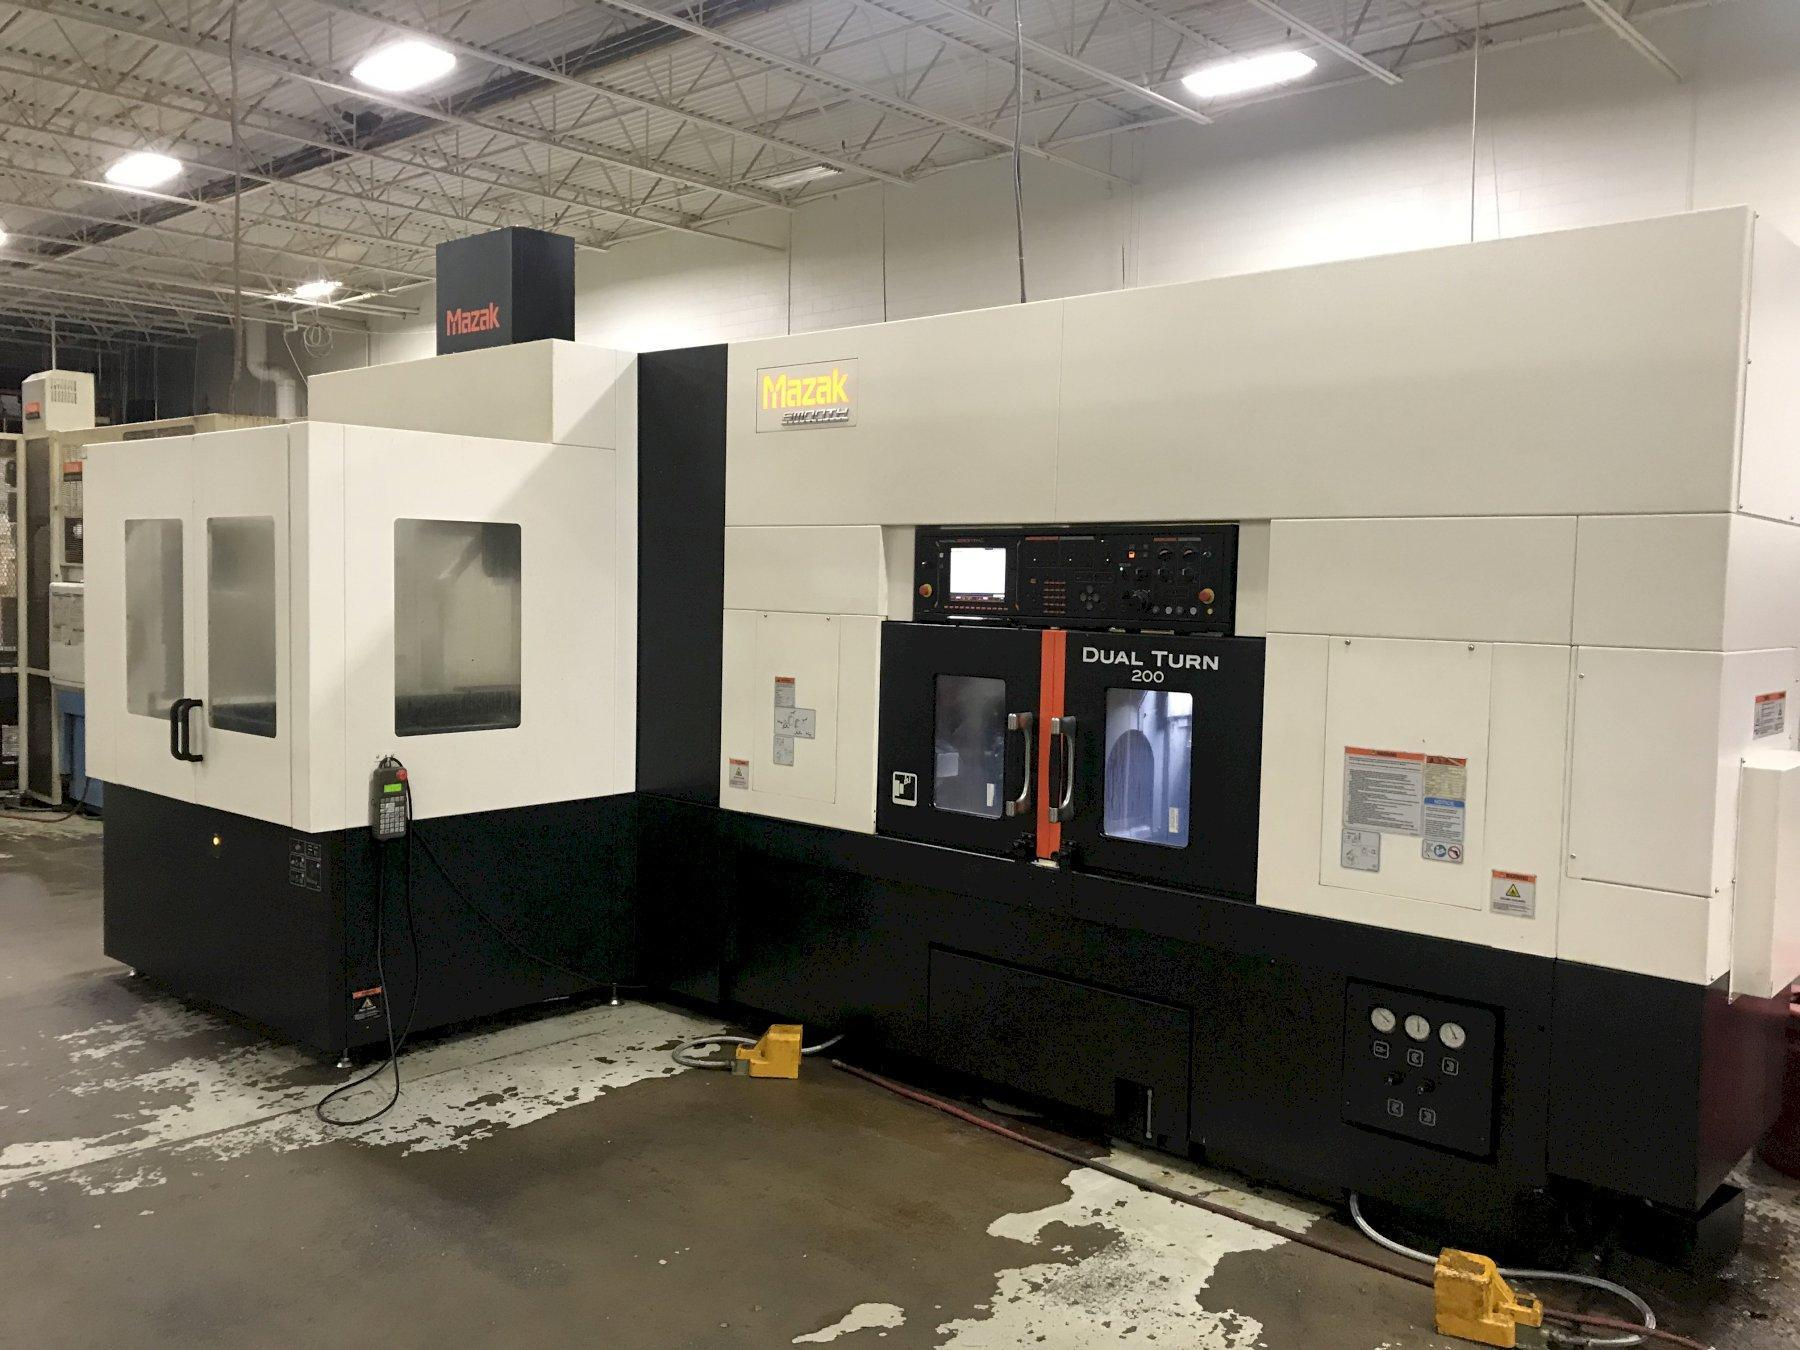 Mazak Dual Turn 200 CNC Lathe, Mazatrol Smooth C, 12.6